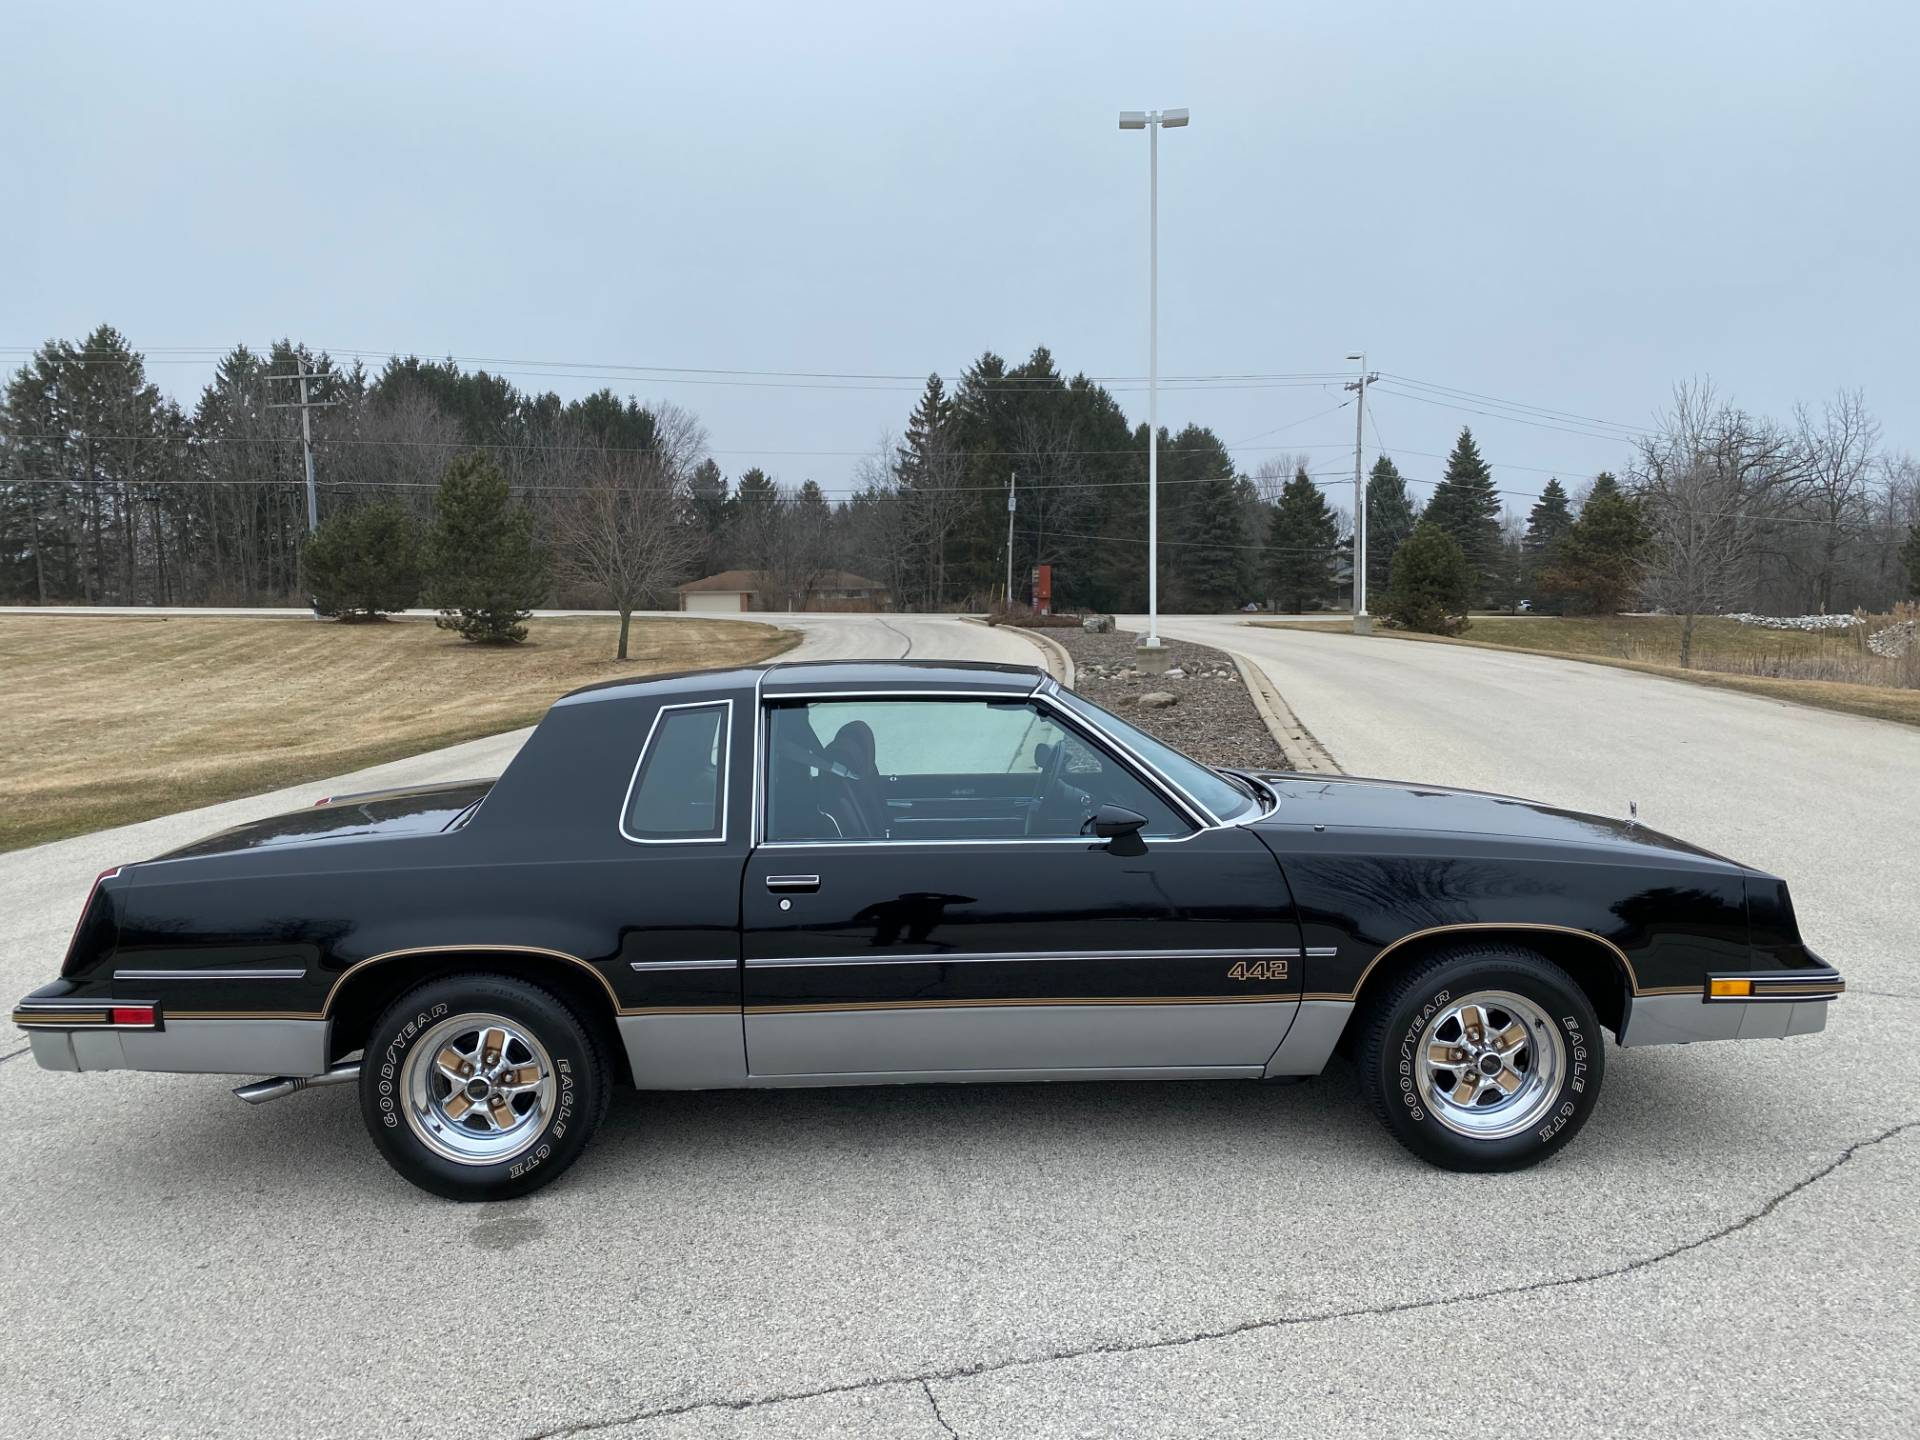 1985 Oldsmobile Cutlass Salon 442 in Big Bend, Wisconsin - Photo 2